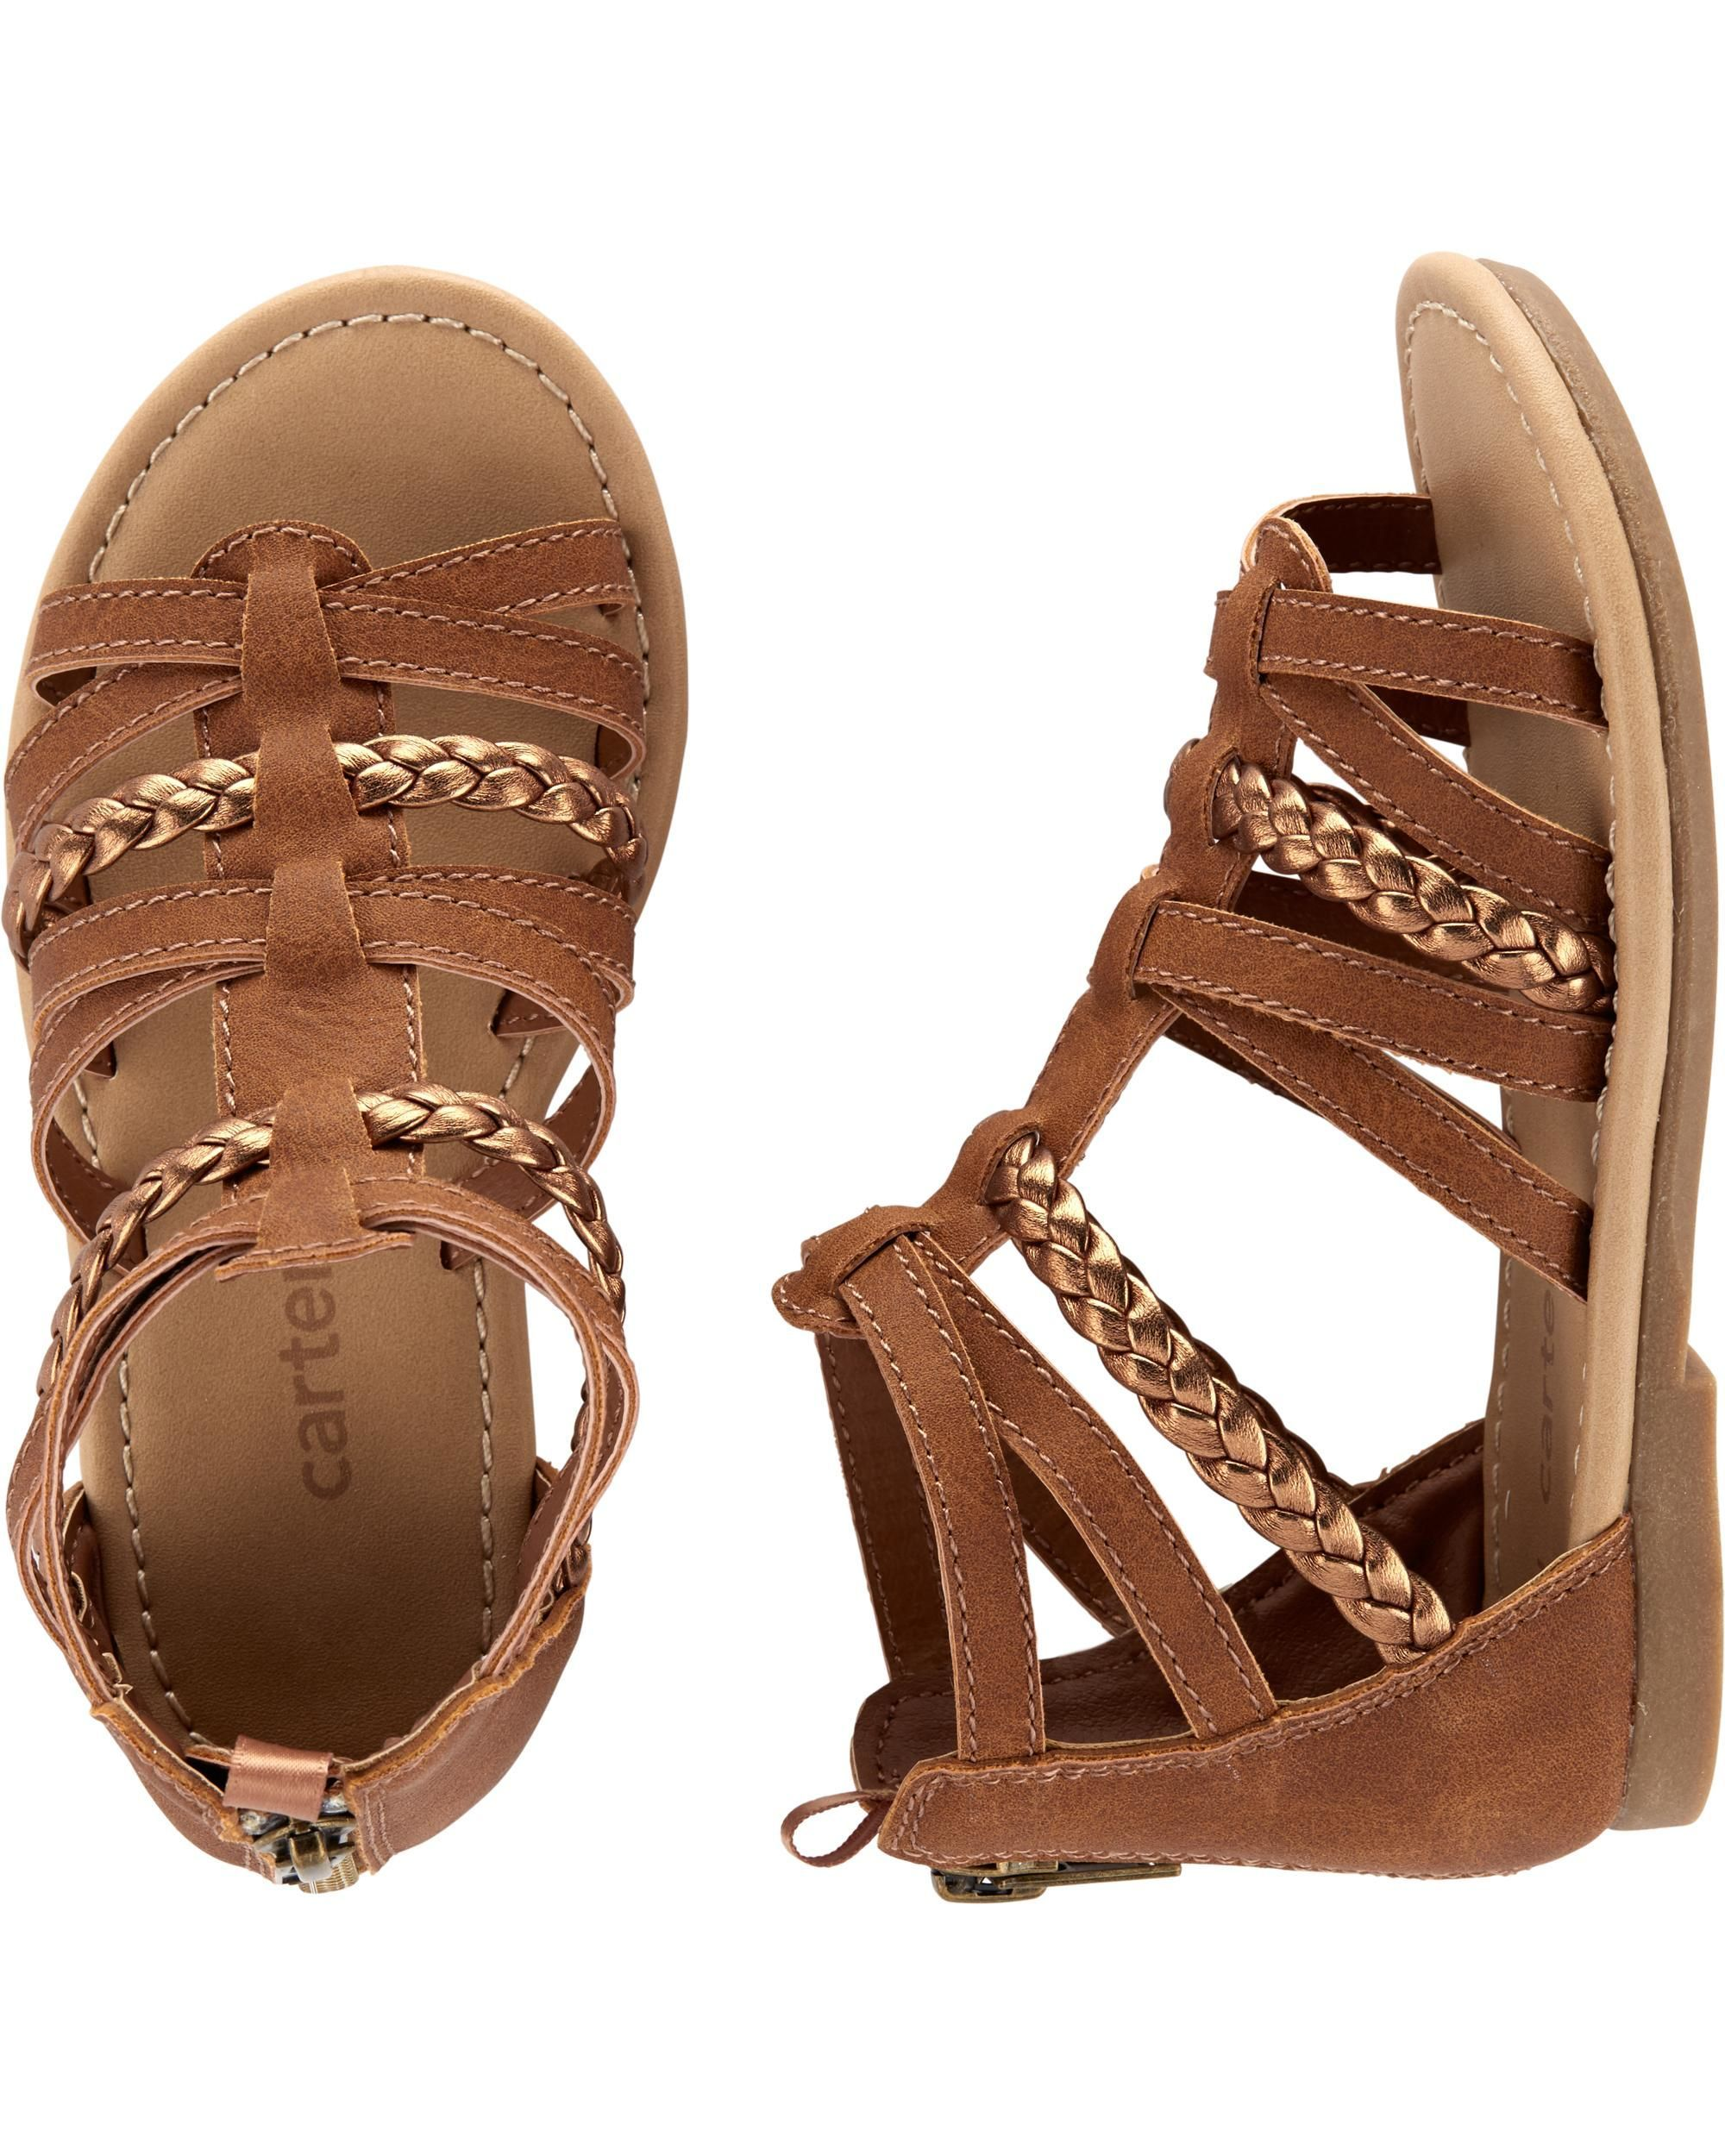 cab085a2e15 Baby Girl Carter s Gladiator Sandals